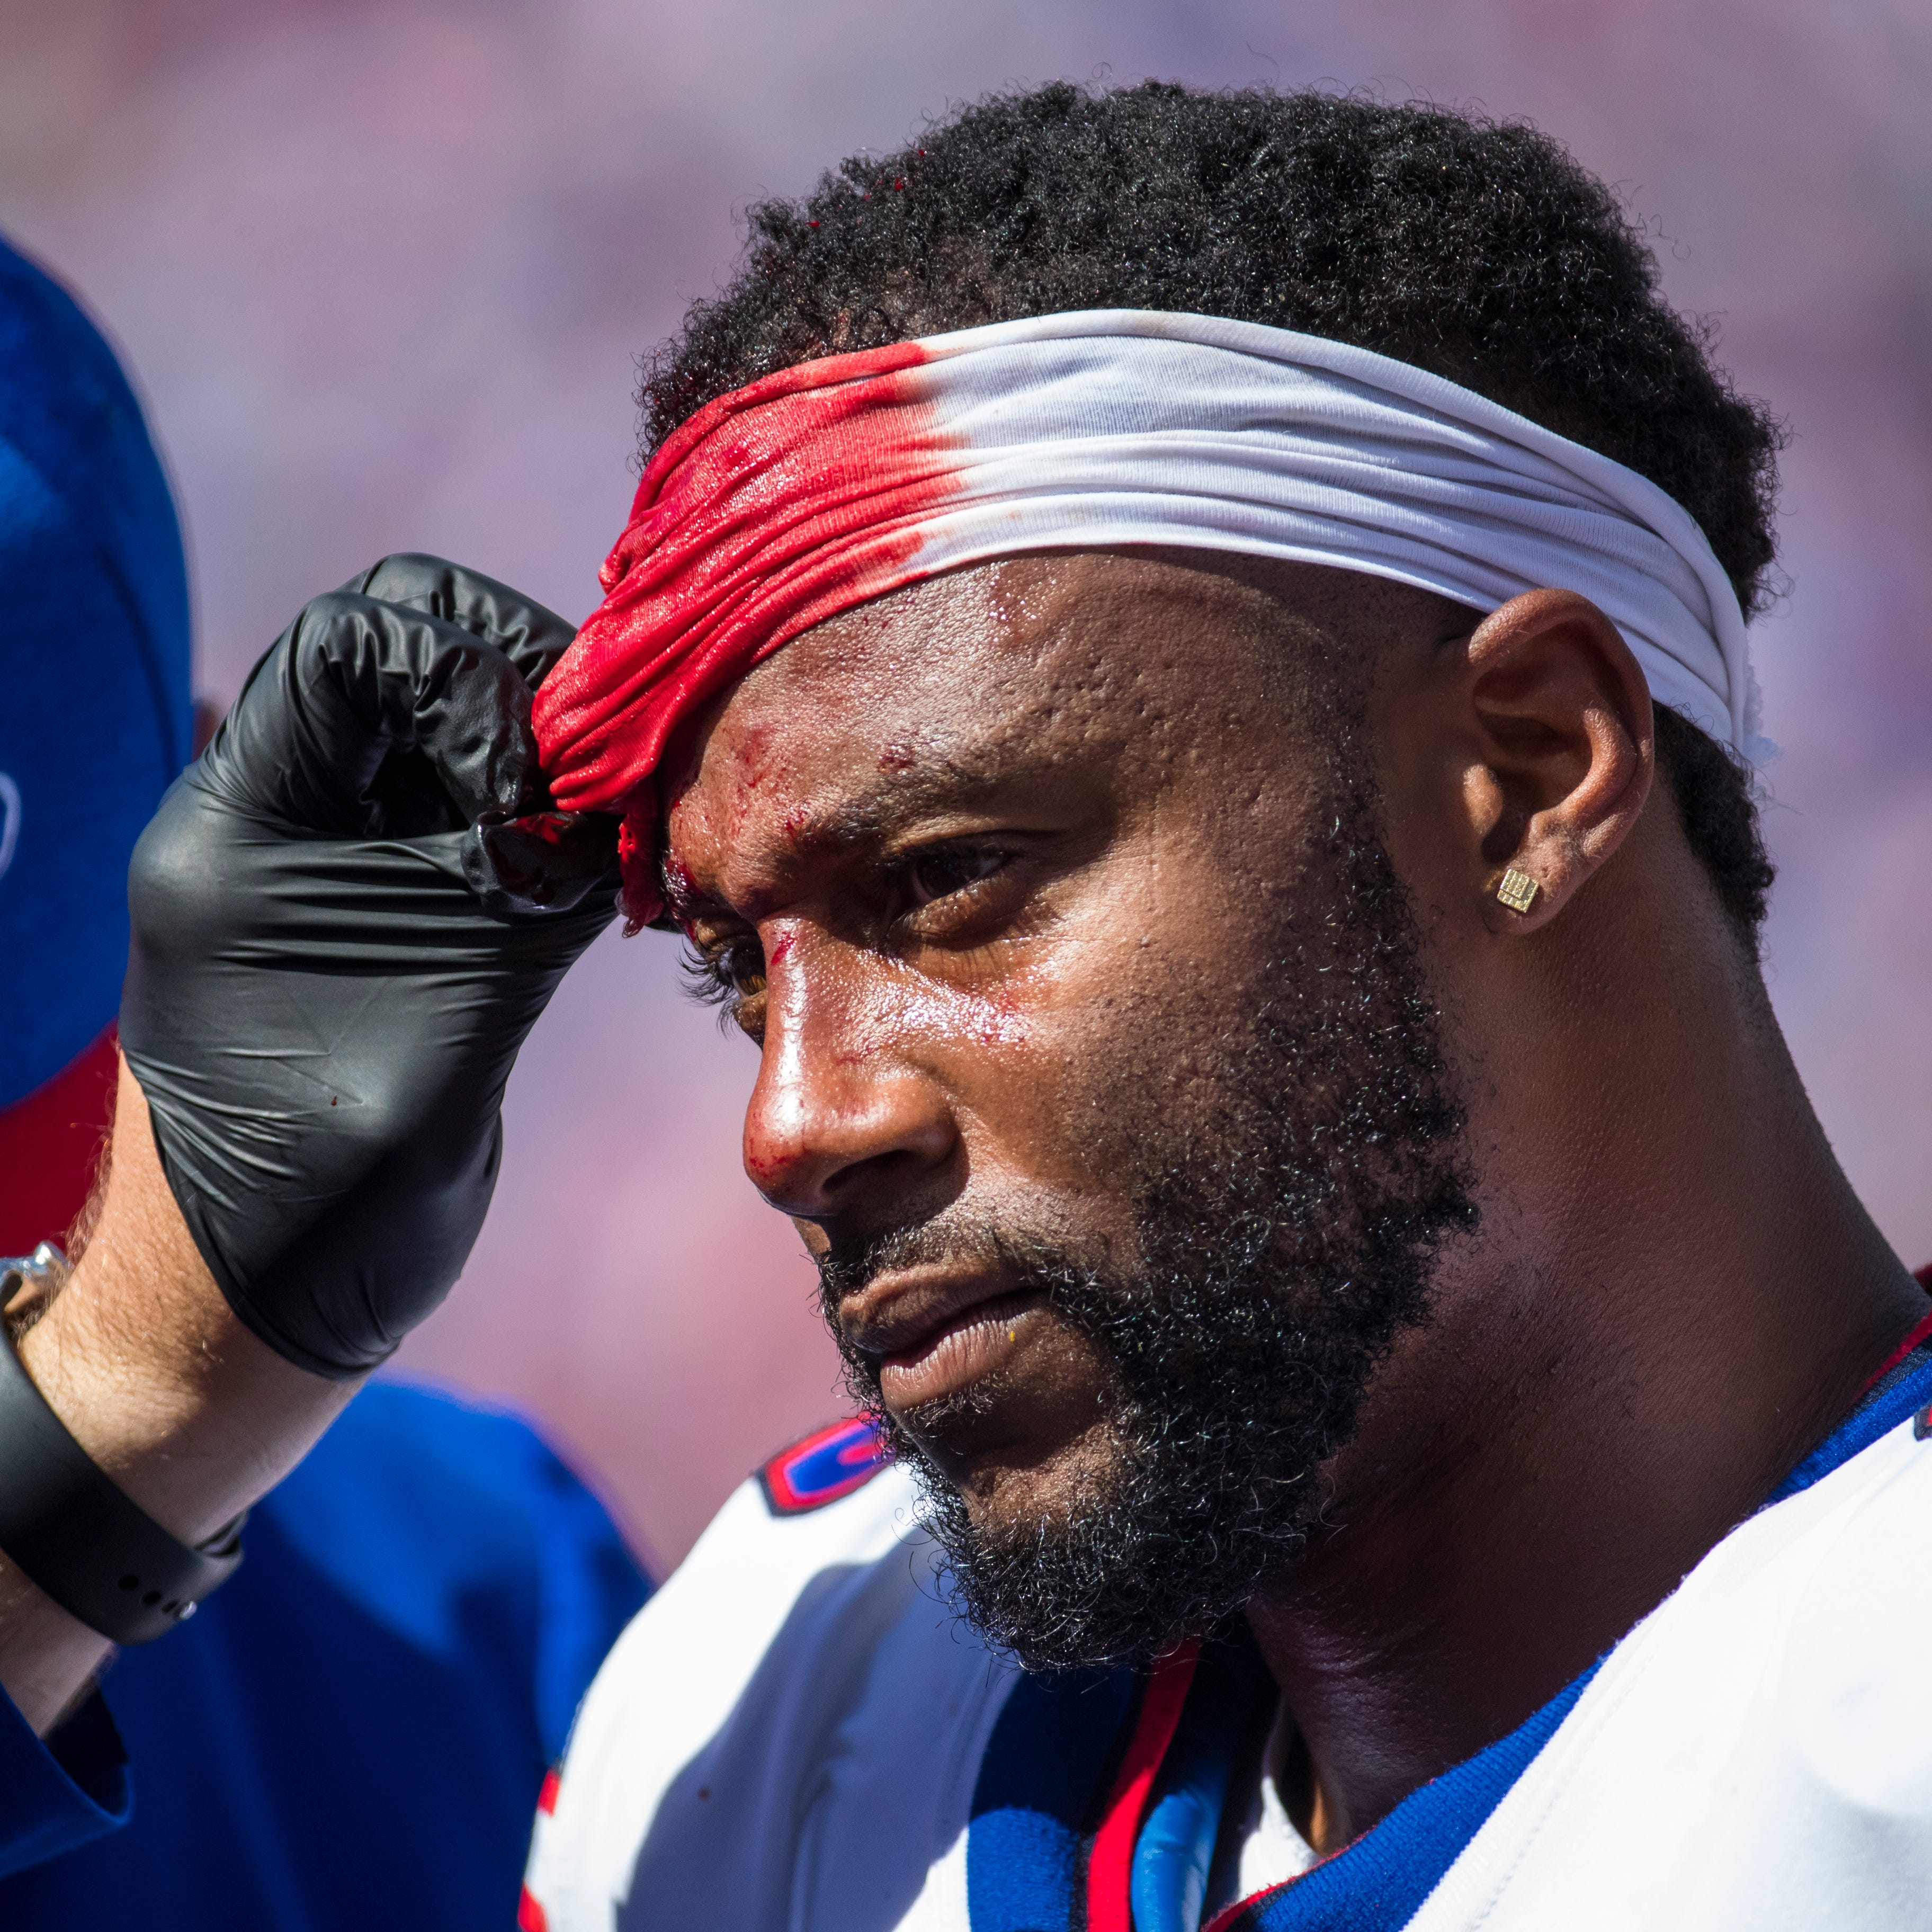 Bills running back Taiwan Jones took 10 stitches after bloody hit without helmet